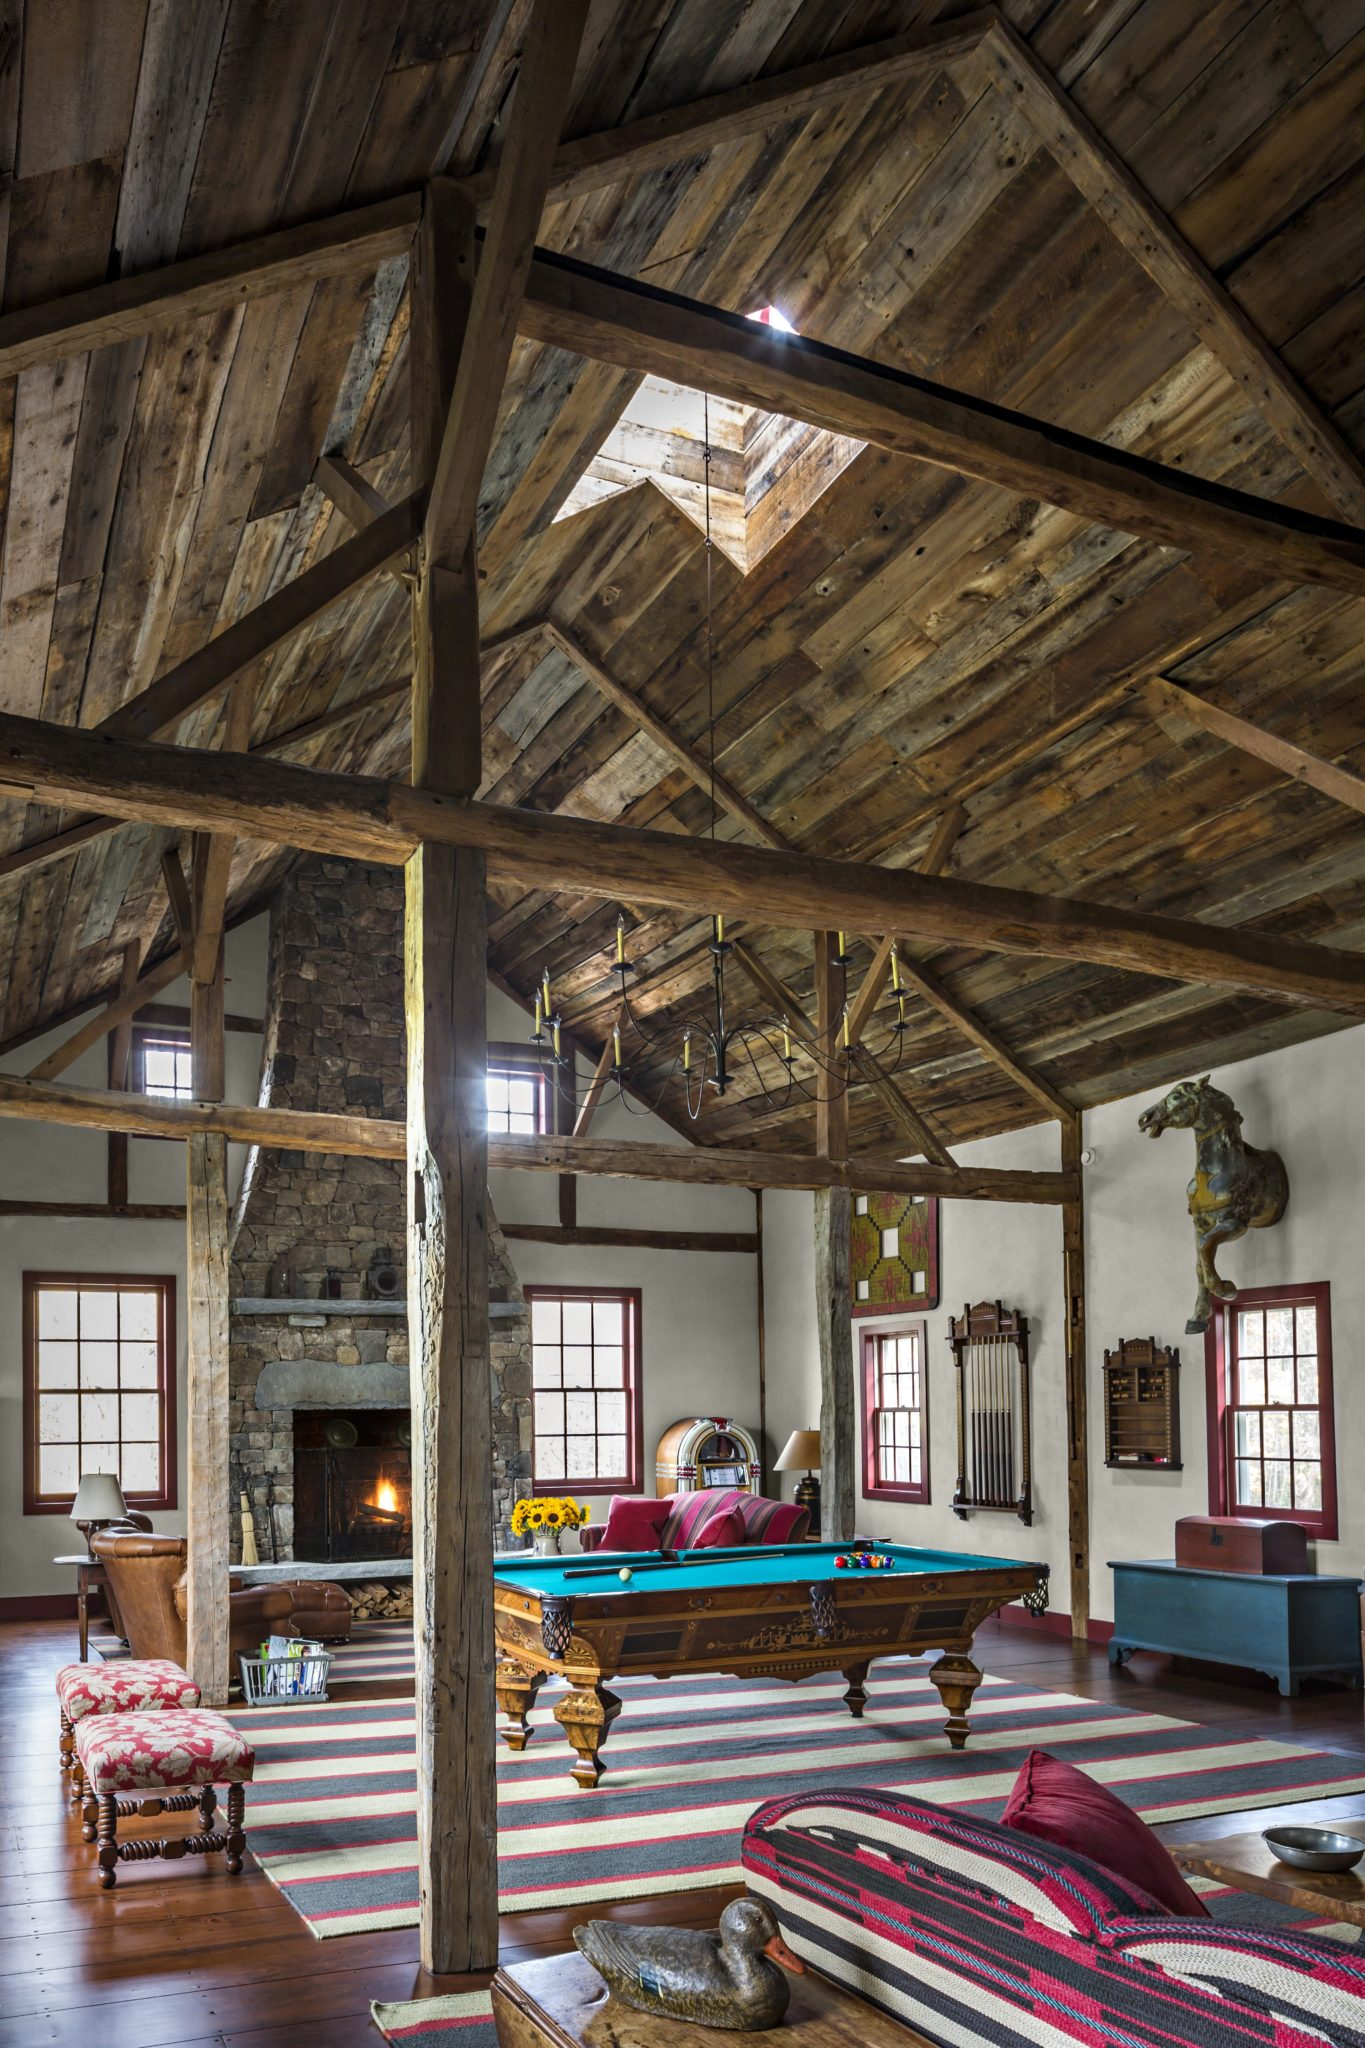 Billiard Room in Converted Antique Barn by Haver & Skolnick Architects